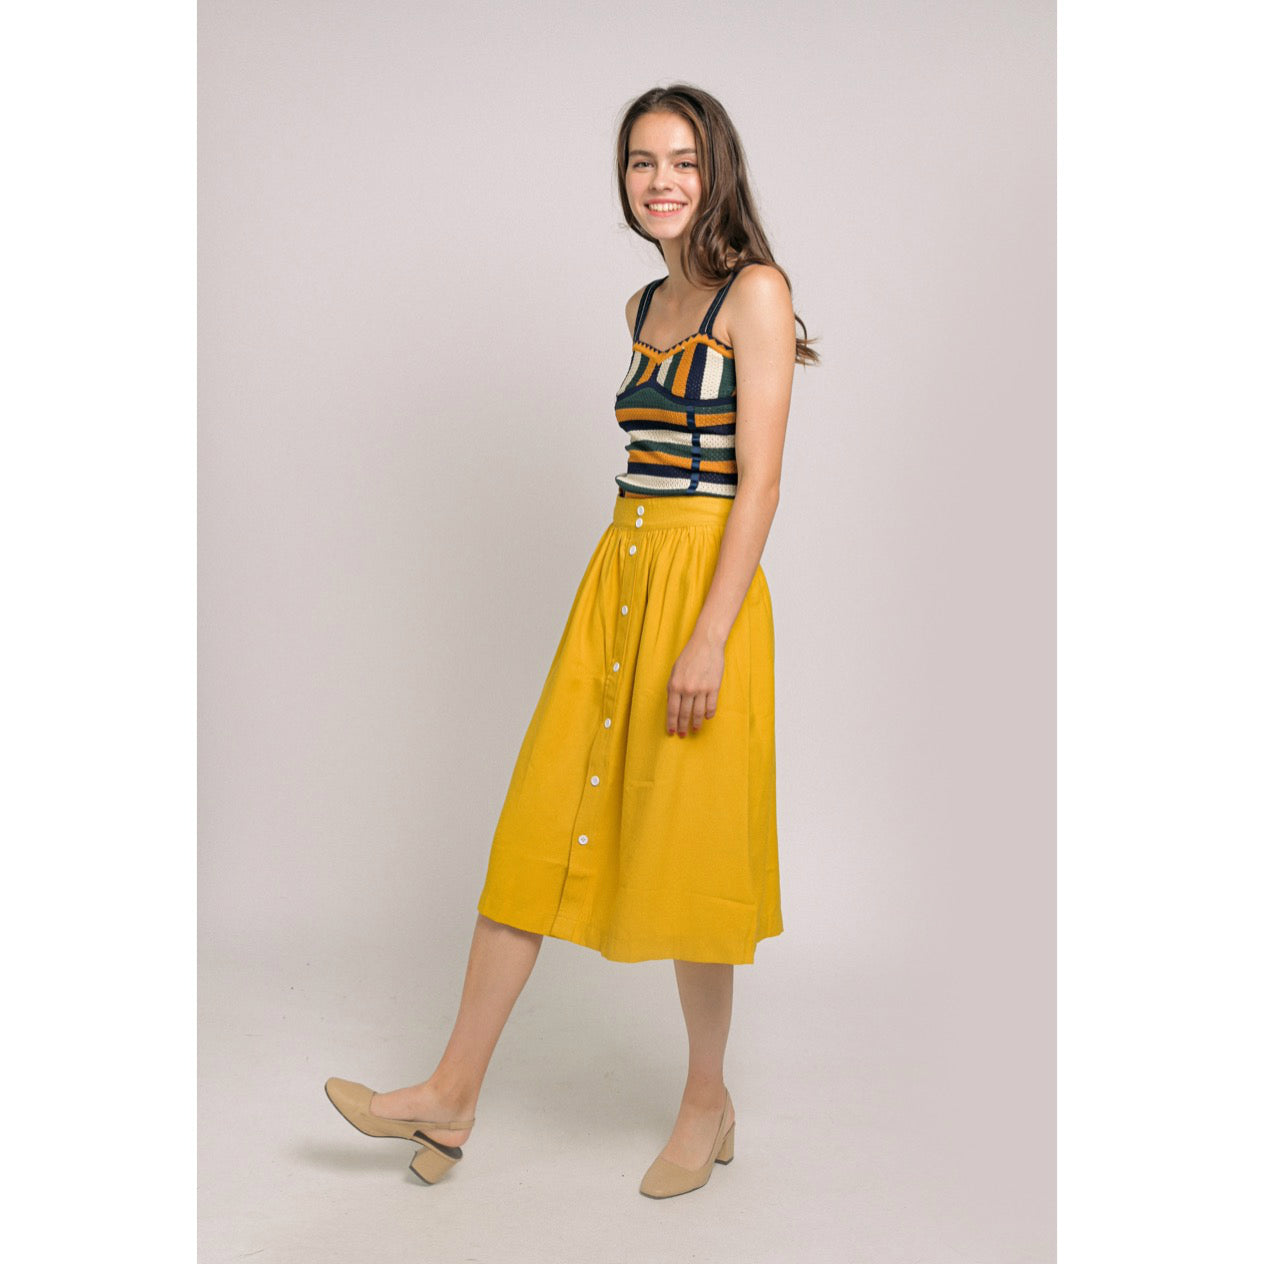 Dianne Knit Top Buttoned Skirt Set